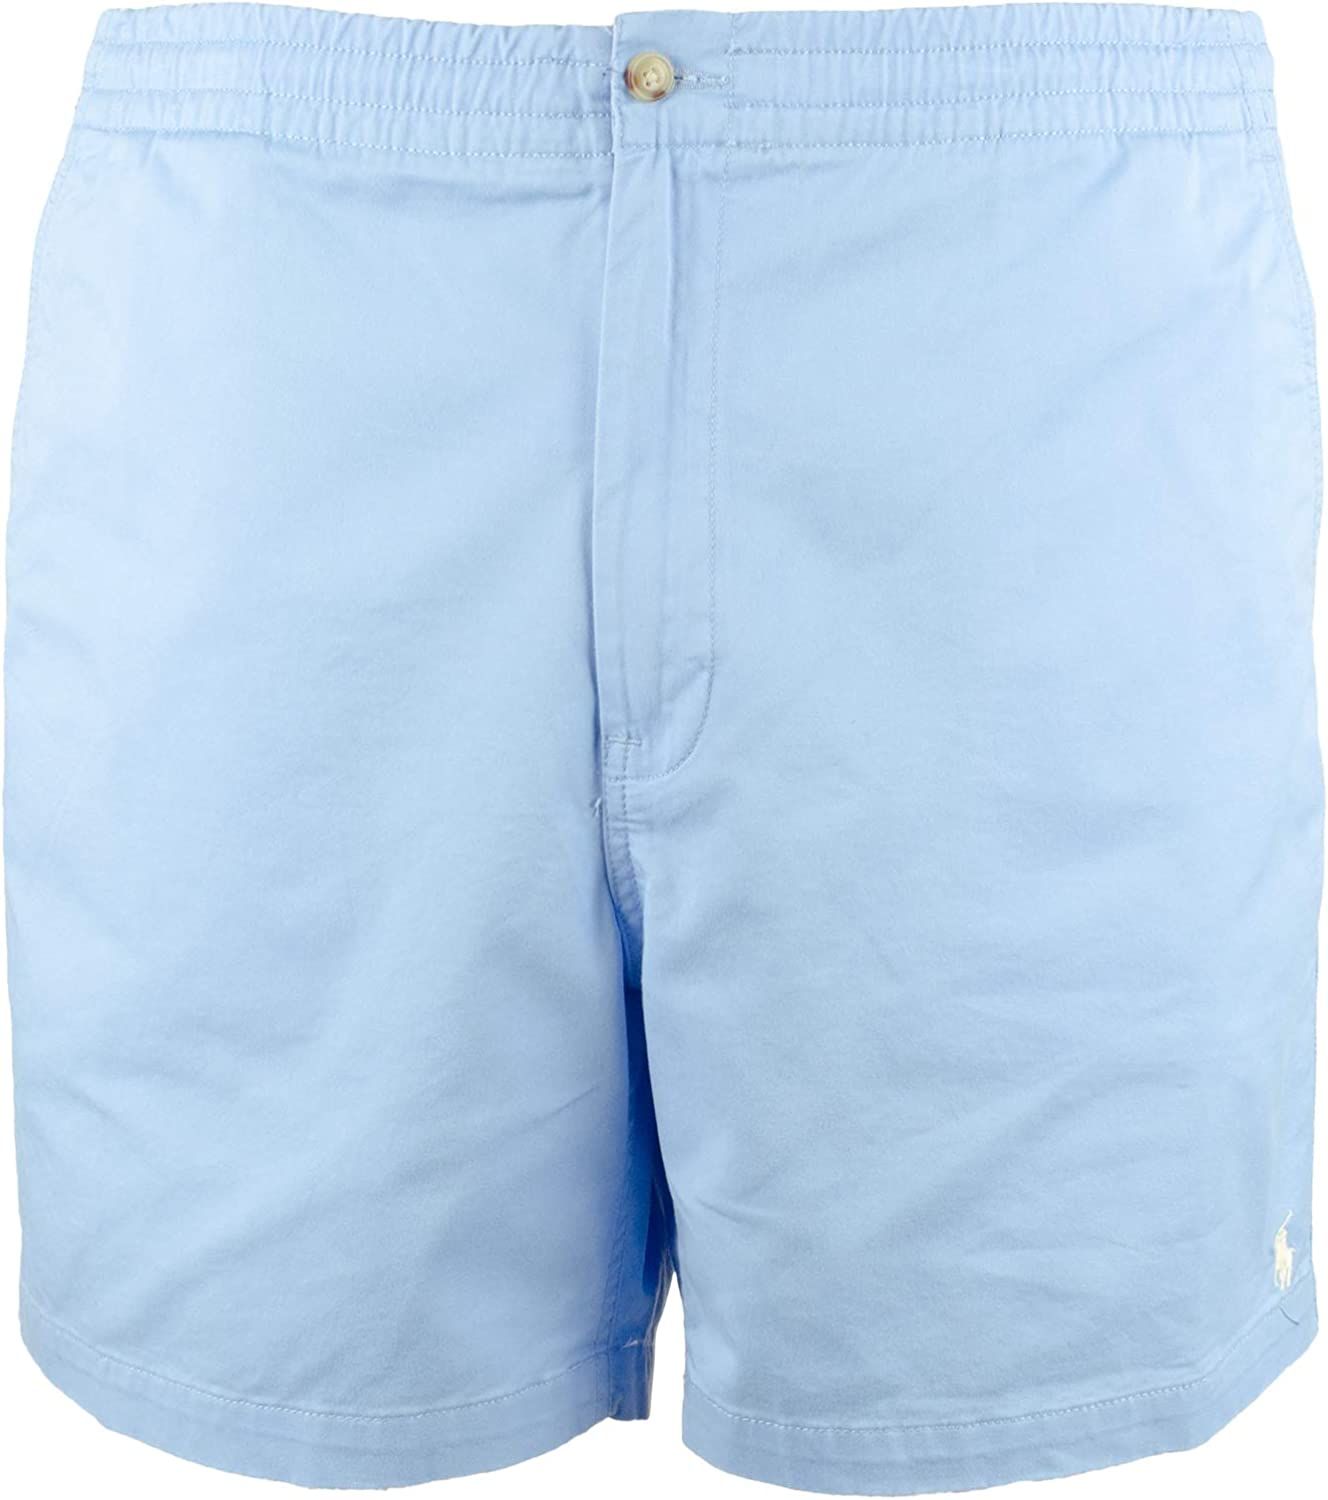 Men's Big and Tall Classic Prepster Stretch Shorts